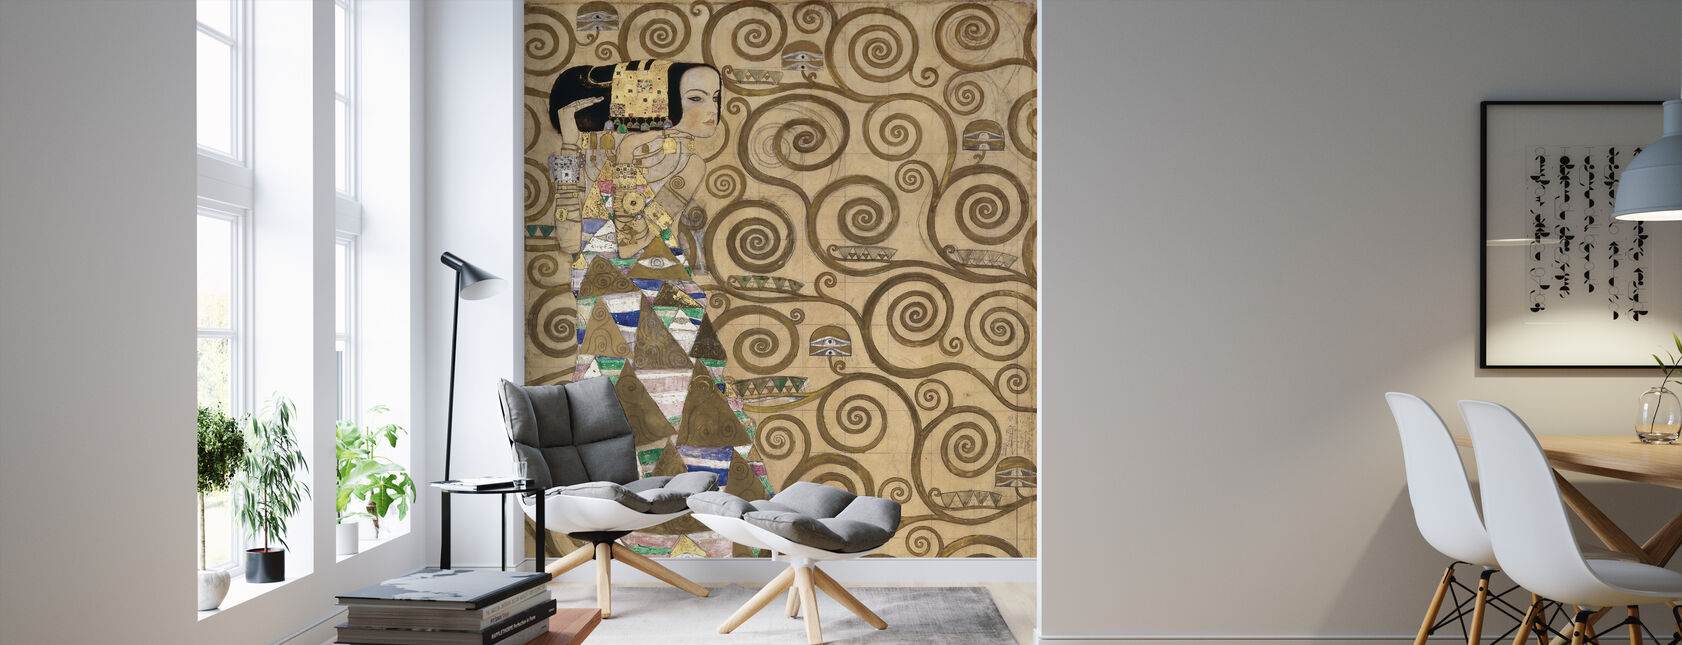 Expectation - Gustav Klimt - Wallpaper - Living Room